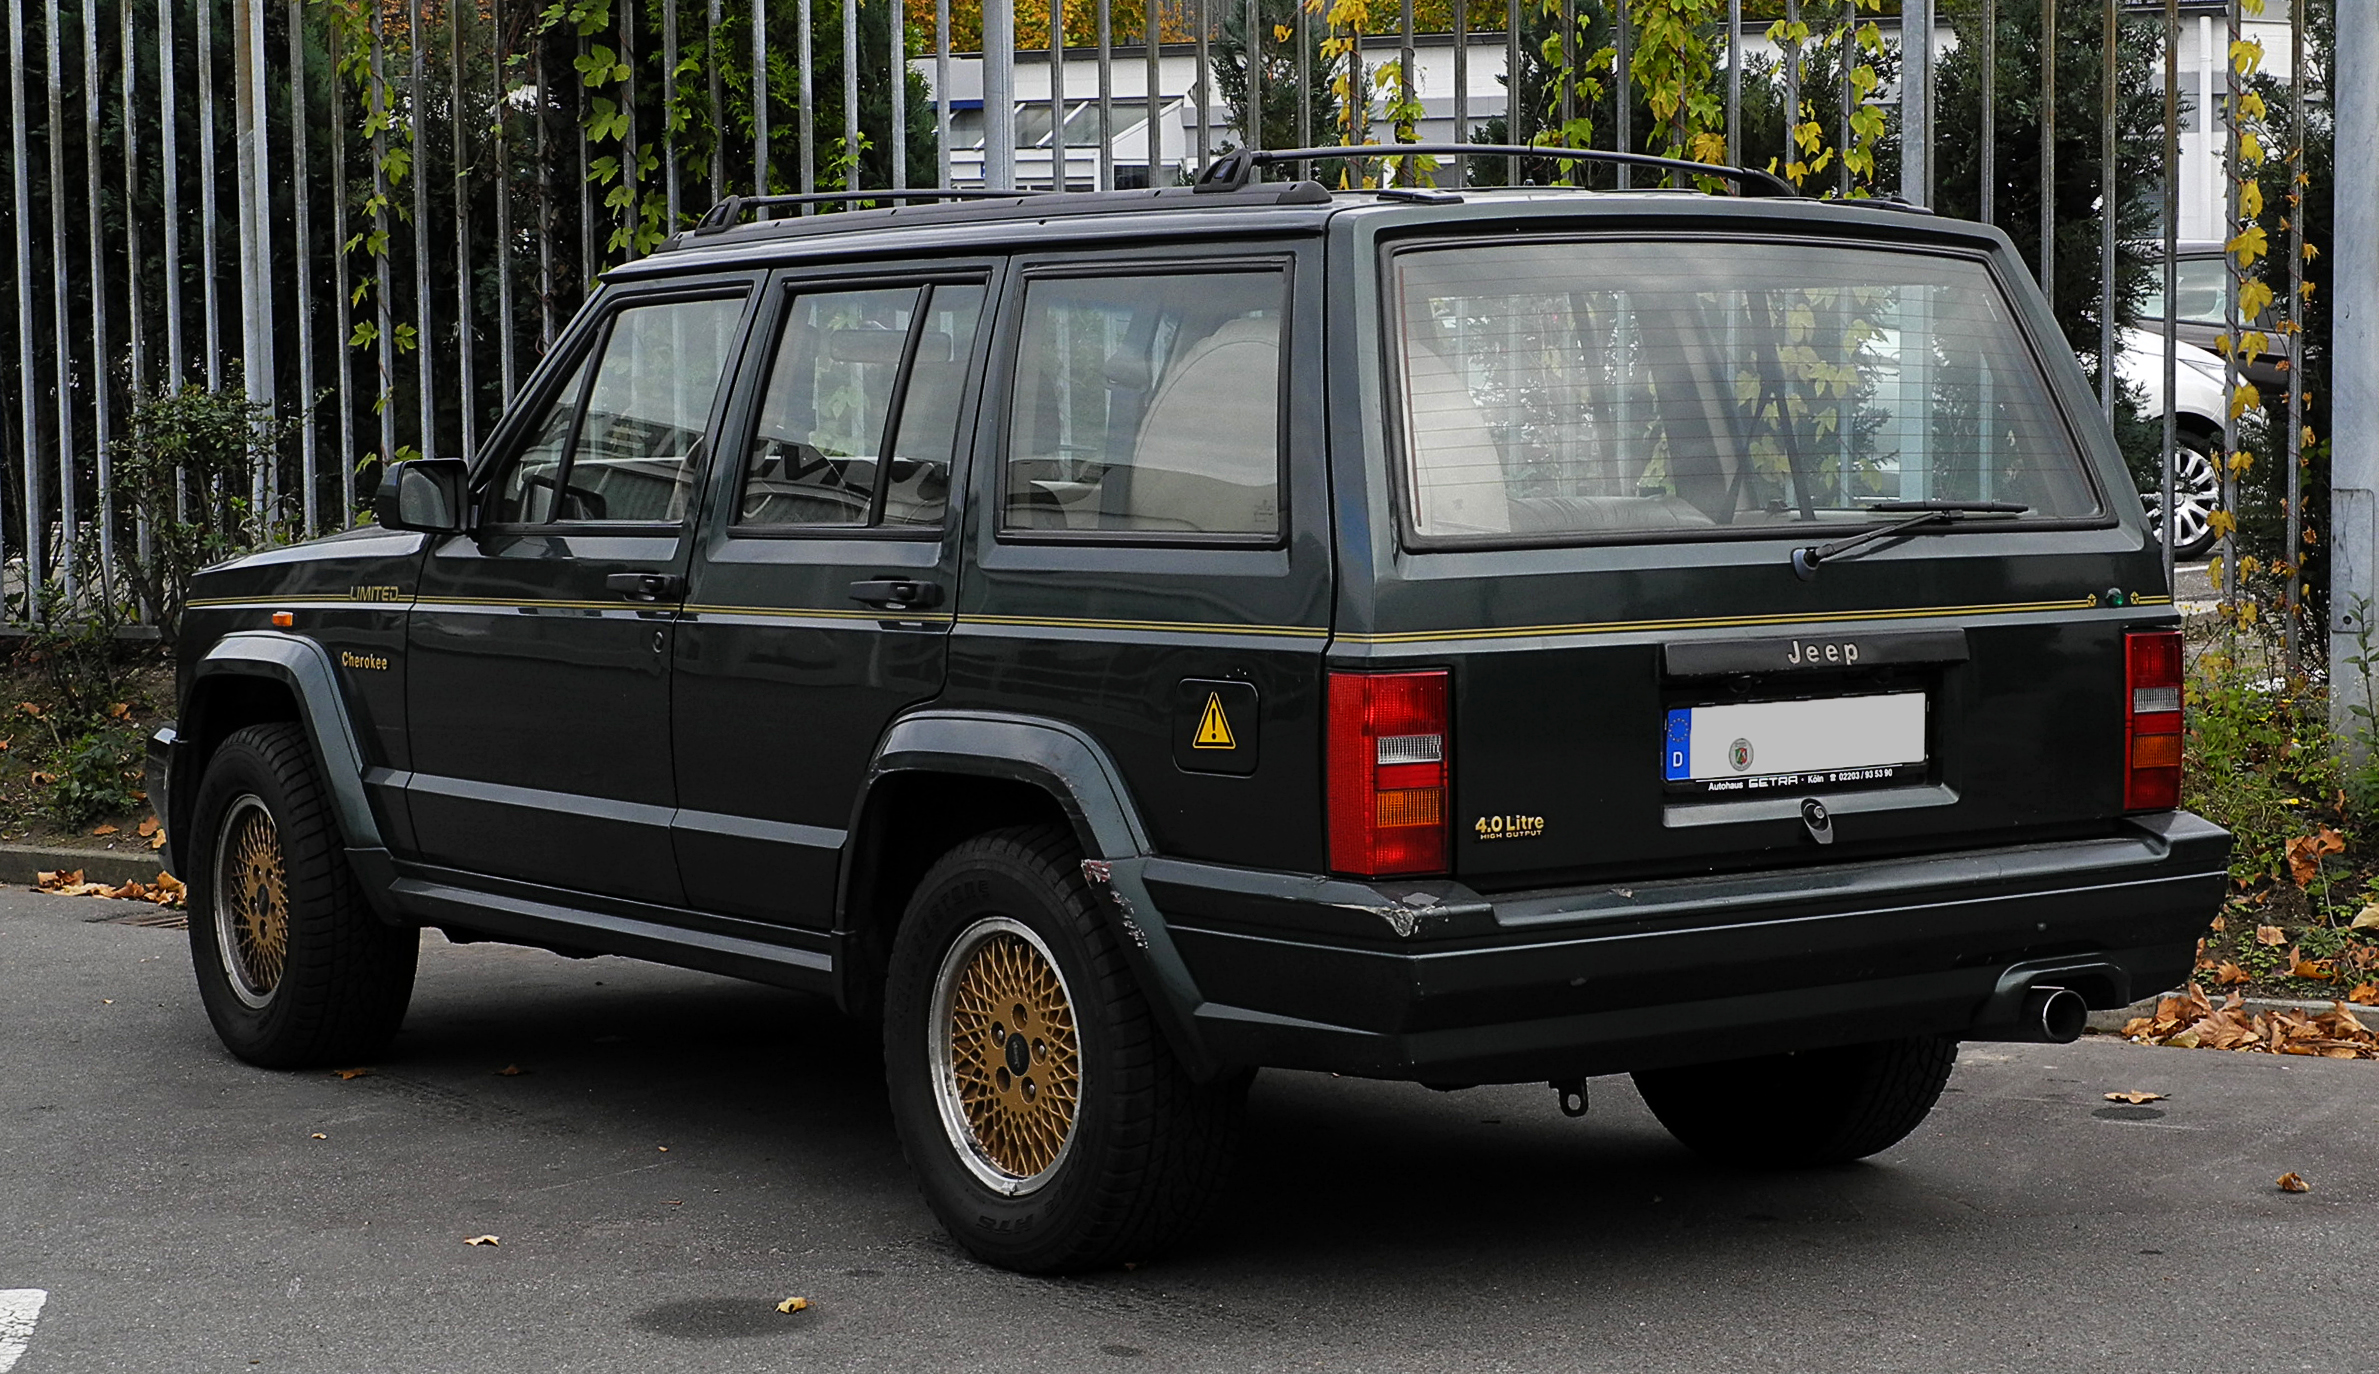 FileJeep Cherokee 40 Litre Limited (XJ, Facelift